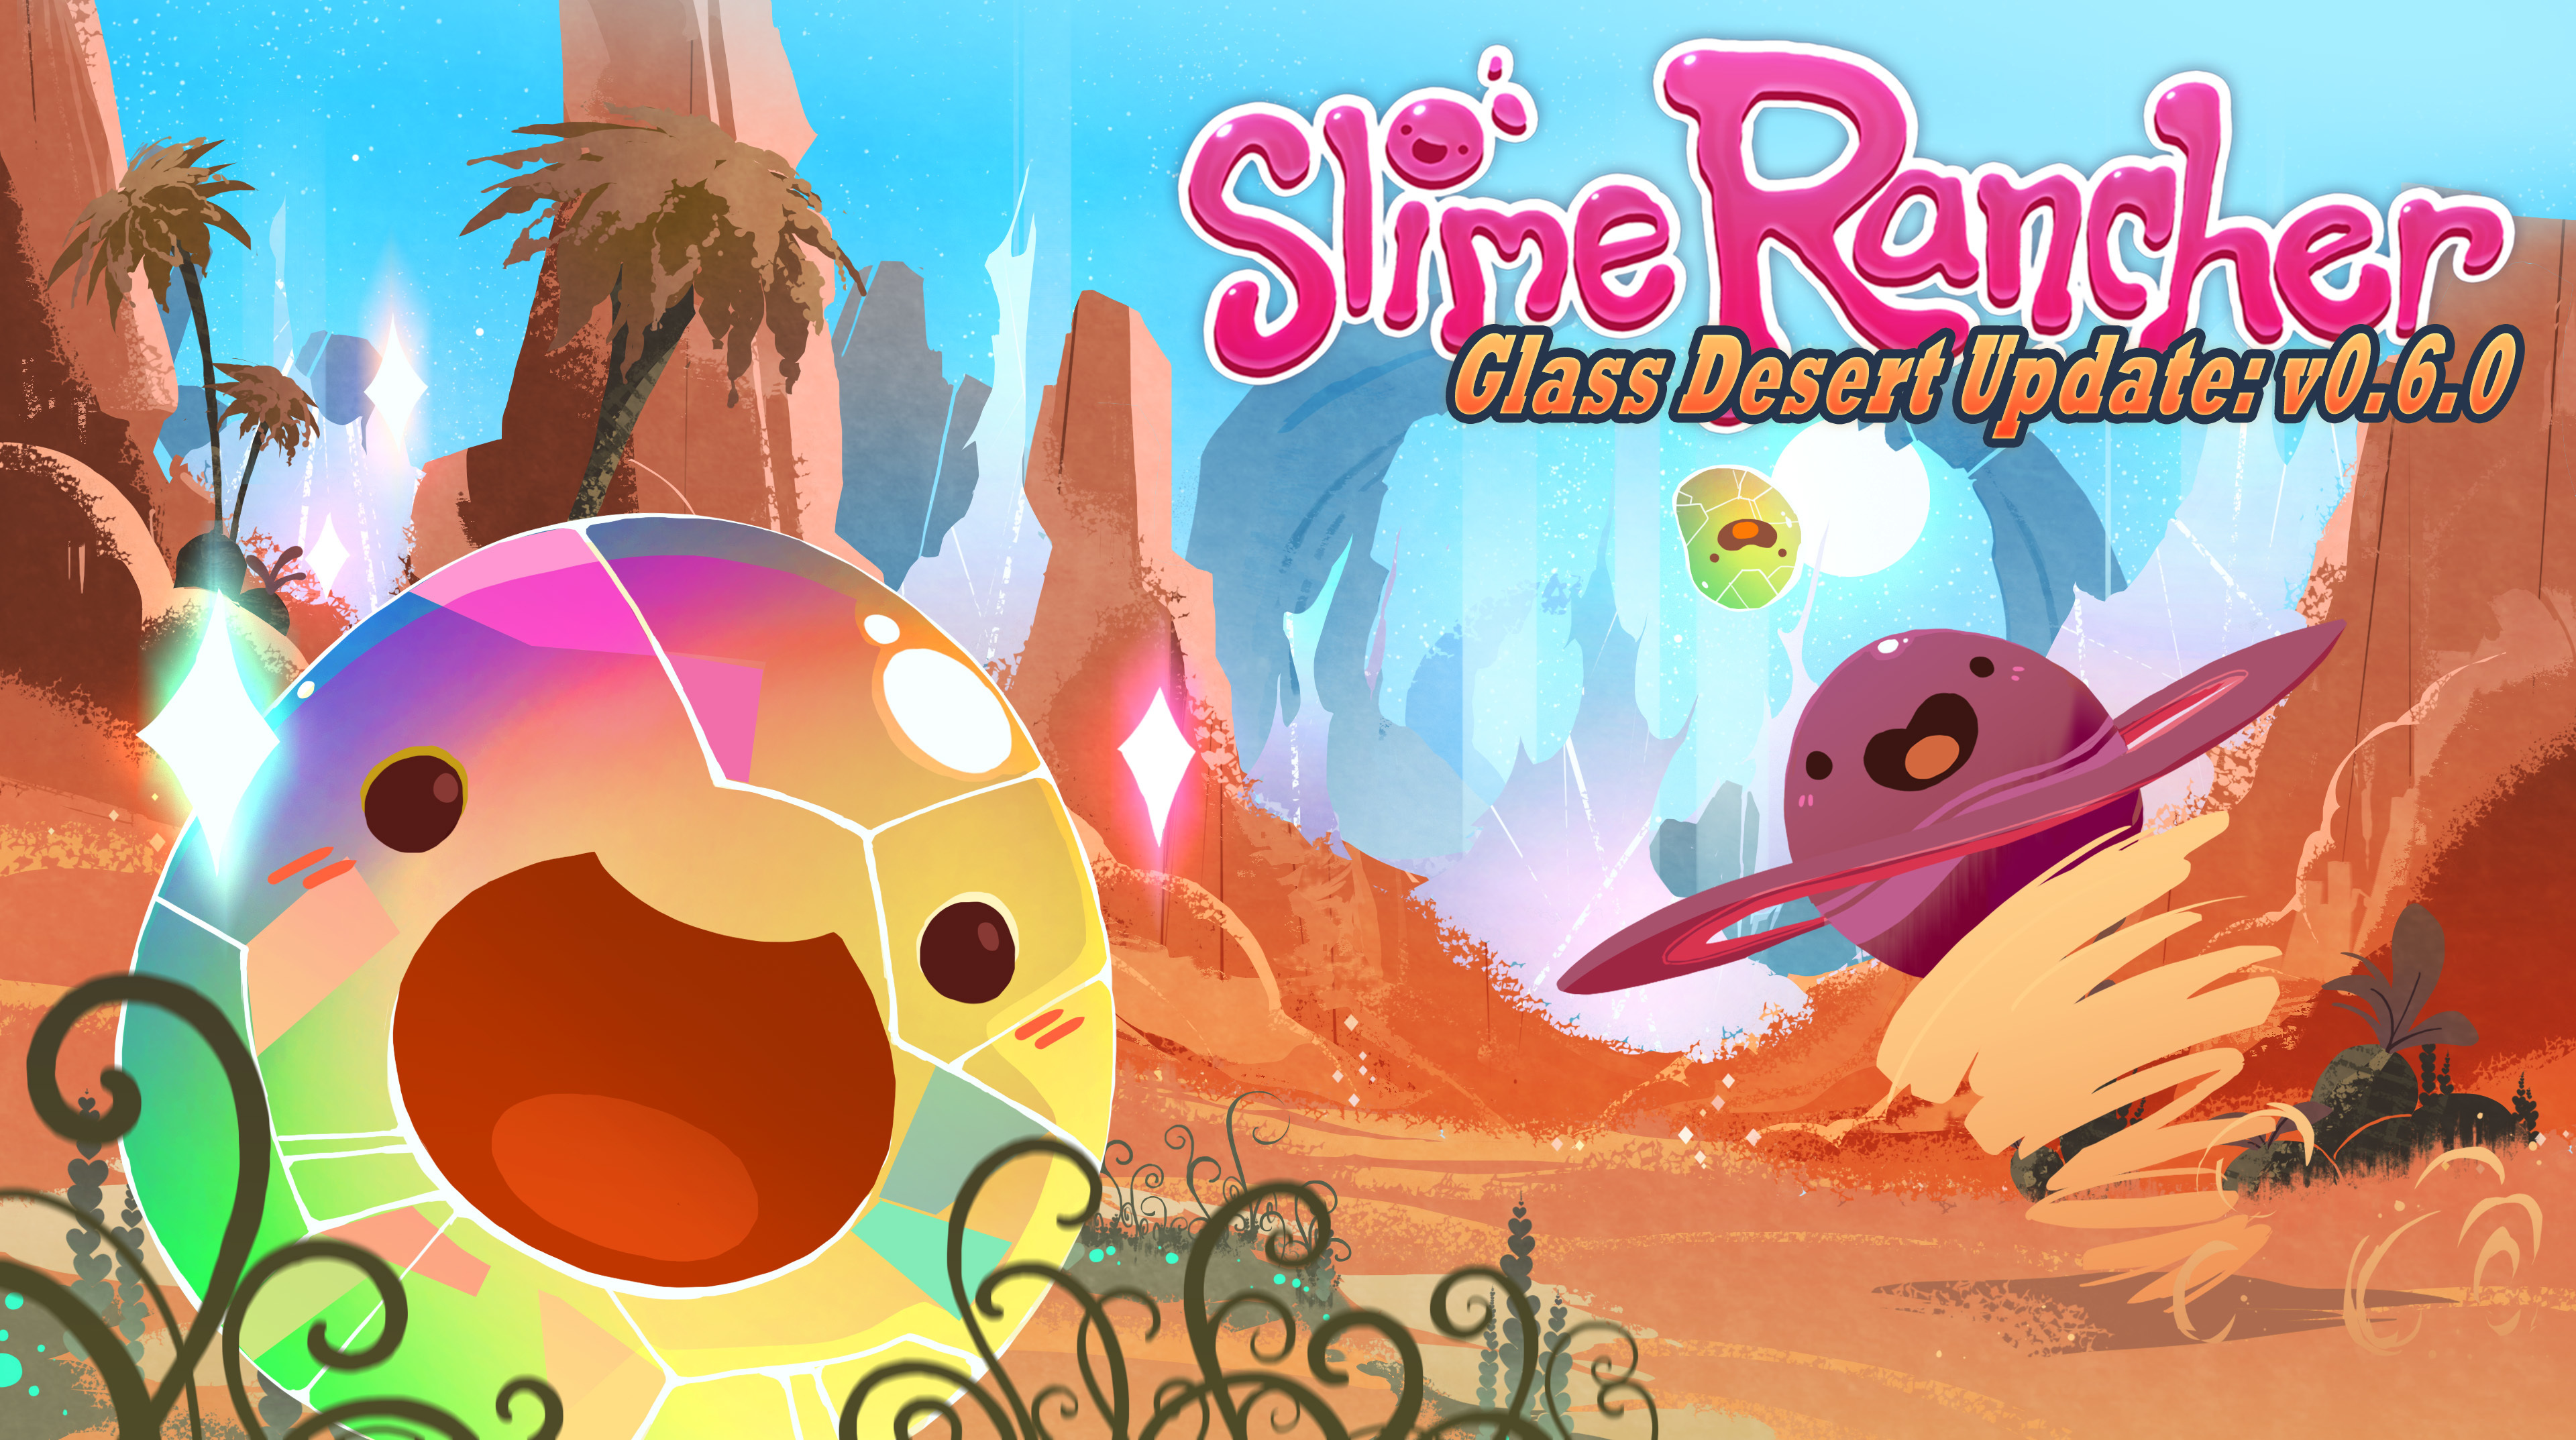 Slime Rancher v0 6 0 Now Available! - Slime Rancher